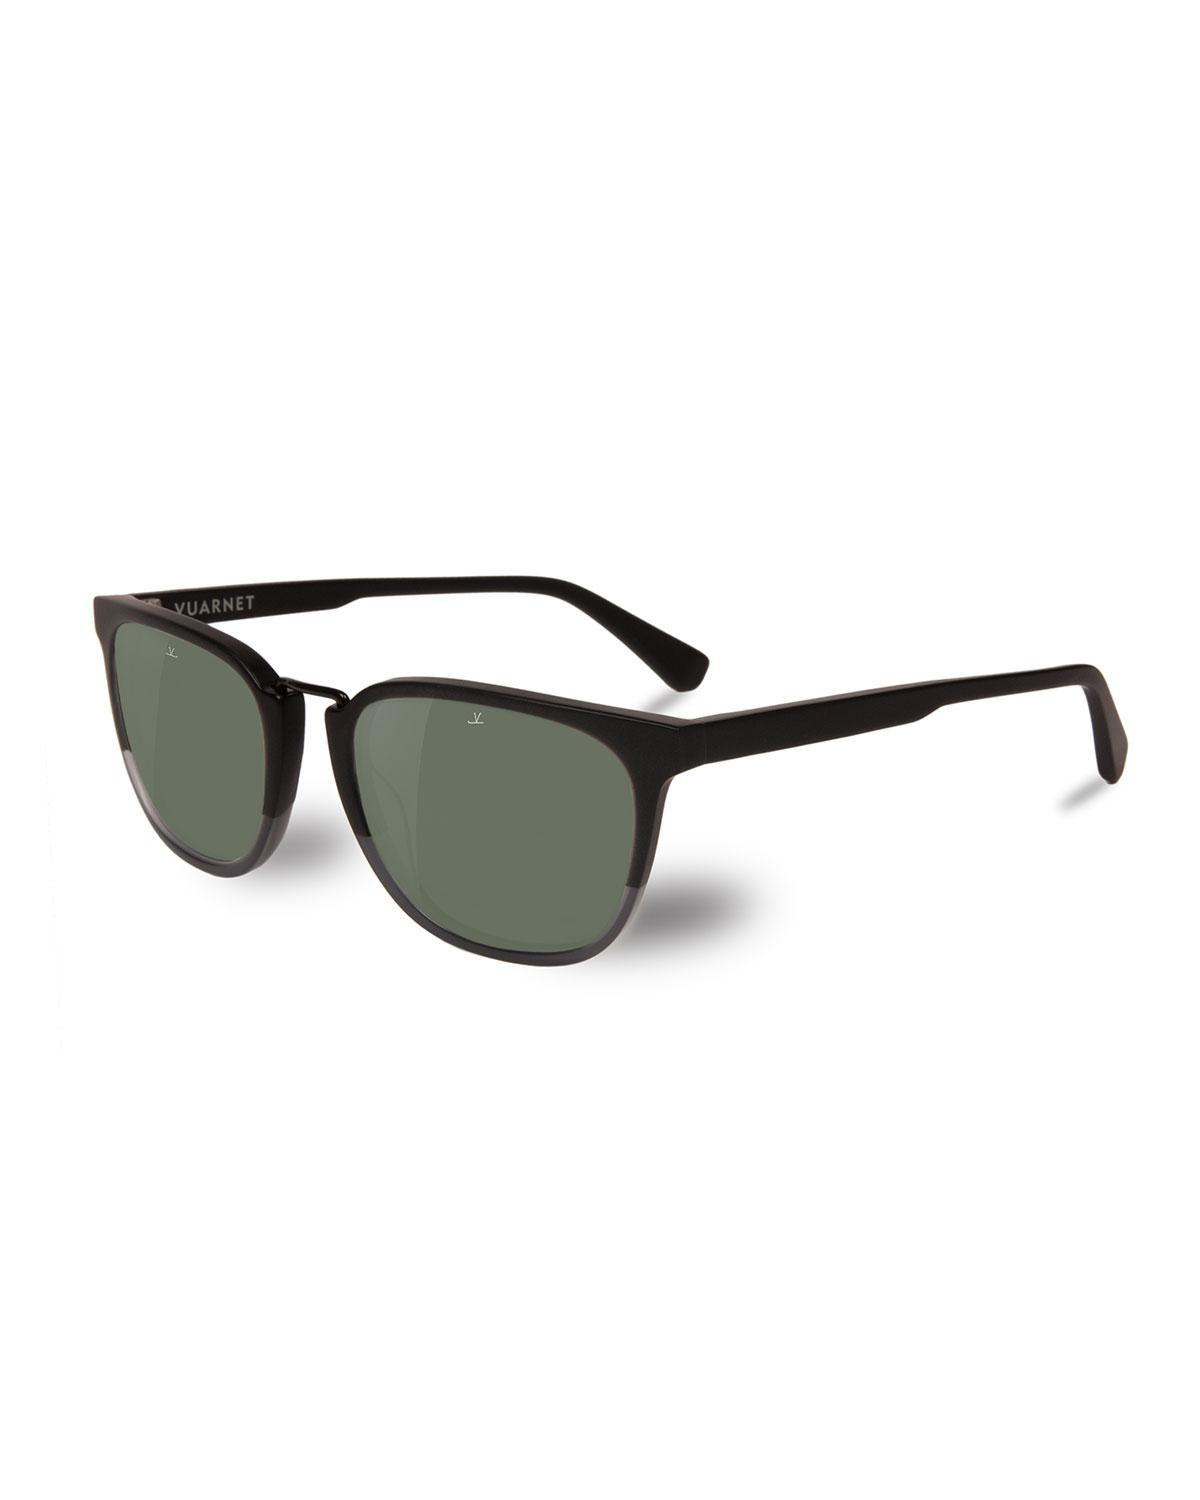 369ef1a41c Vuarnet Men s Cable Car Square Polarized Stainless Steel acetate ...